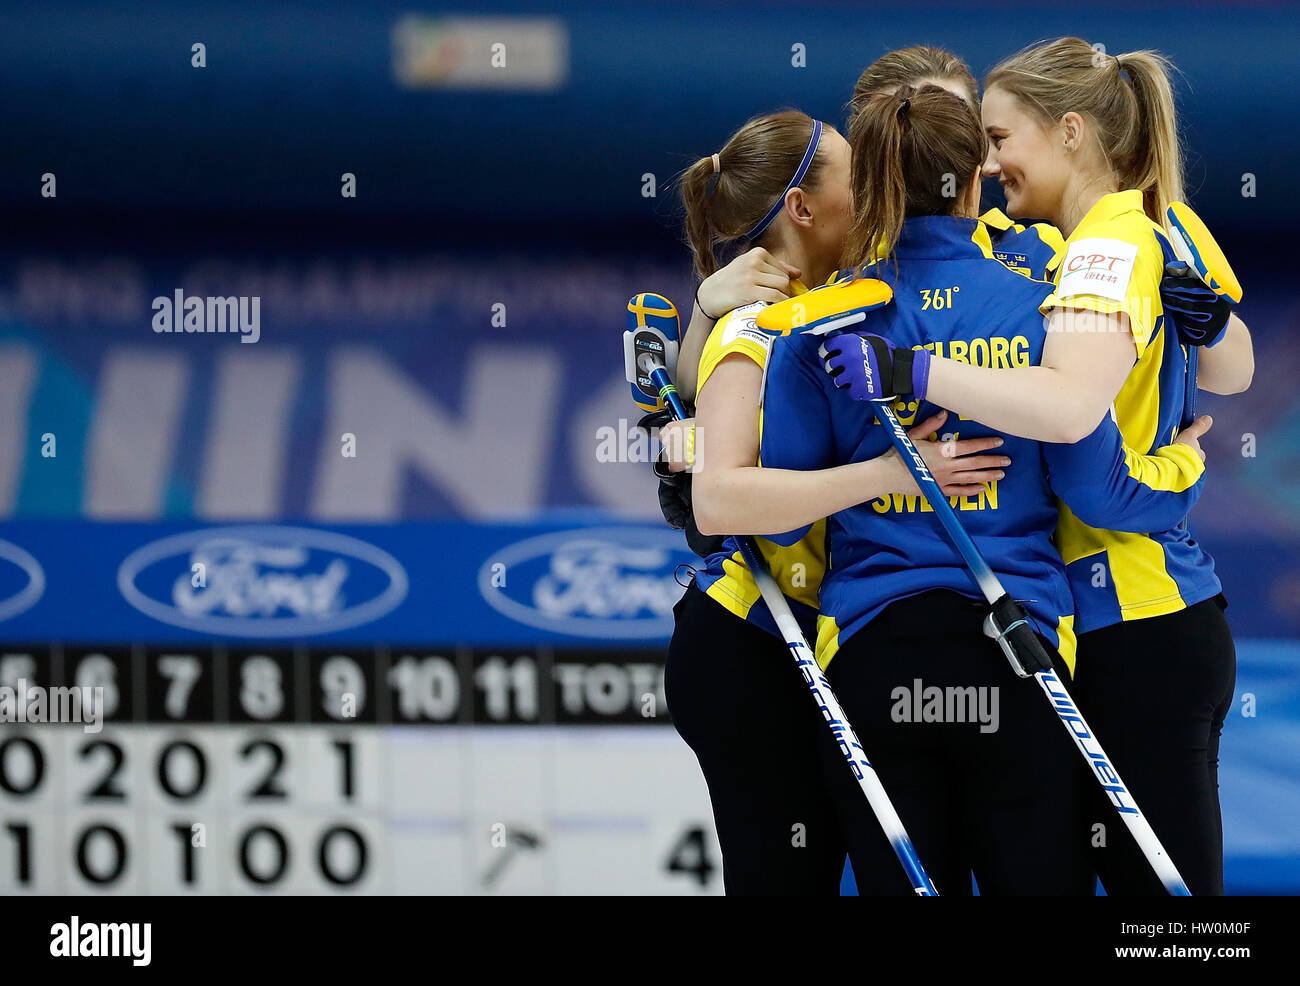 Beijing, China. 23rd Mar, 2017. Players of Sweden celebrate after the World Women's Curling Championship round-robin match against China in Beijing, capital of China, March 23, 2017. Sweden won 10-4 . Credit: Wang Lili/Xinhua/Alamy Live News Stock Photo